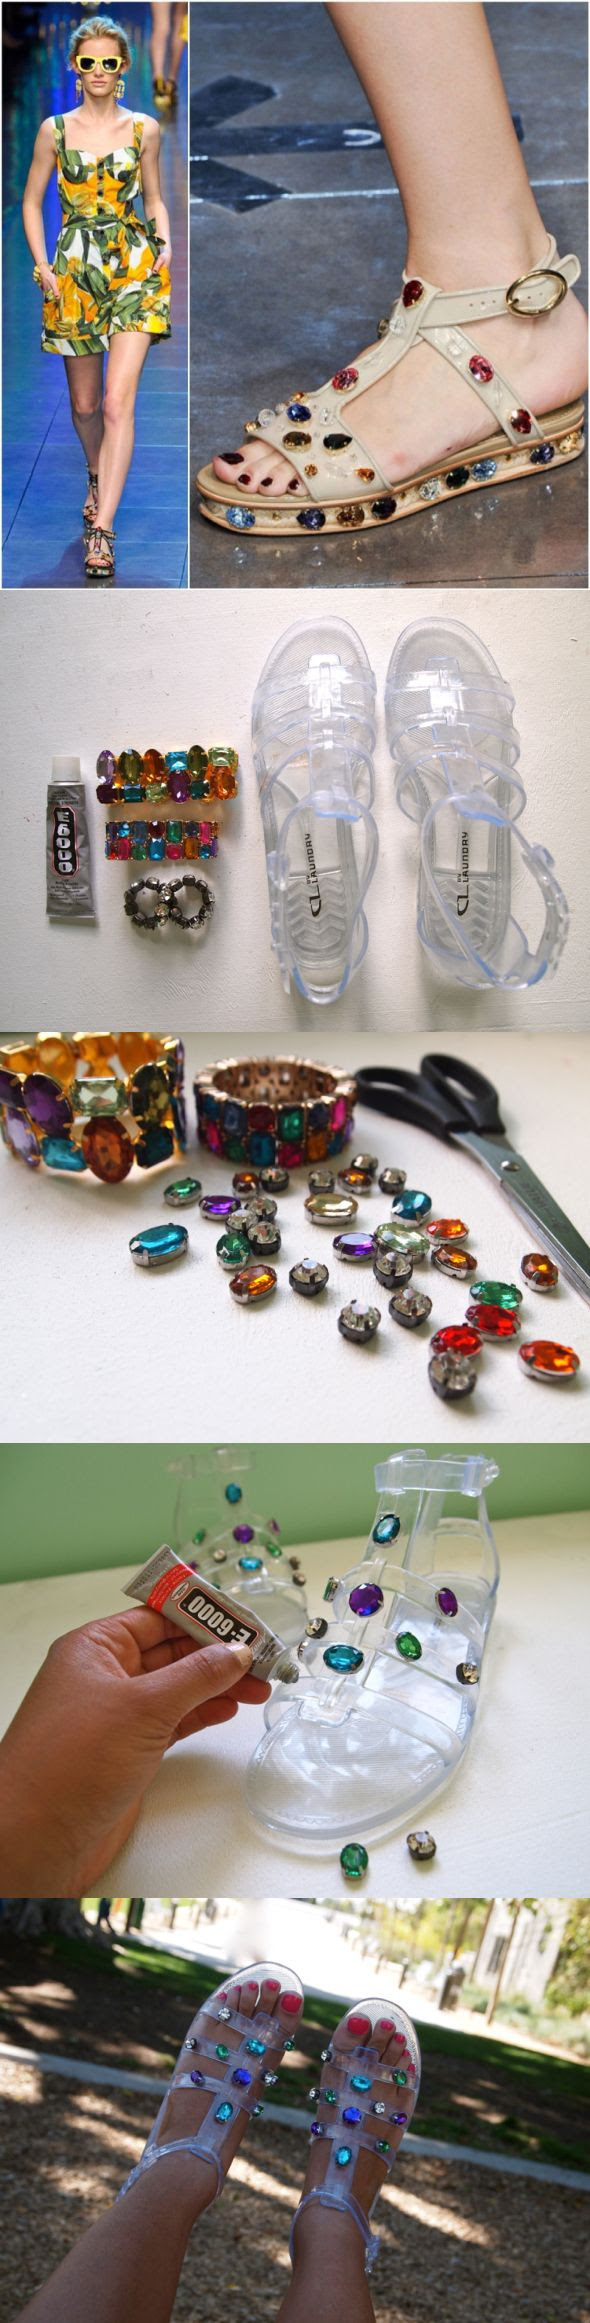 DIY: D&G Jeweled Jelly Sandals - 12 Fashionable DIY Ideas